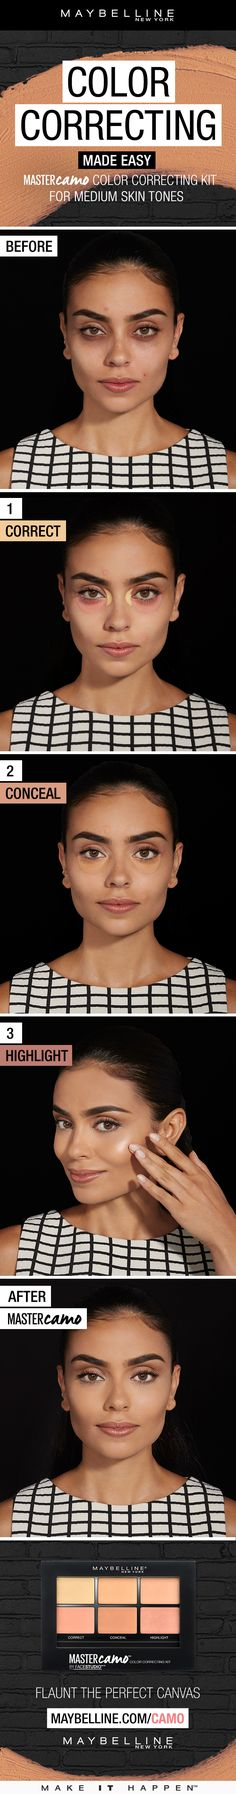 Color correct has finally been made easy! Get flawless skin thanks to the all NEW Maybelline Master Camo Color Correcting Kit. This simple 3 step beauty tutorial shows you how it's done. The apricot corrector in the medium palette color corrects dark spots, while the concealer blends easily to match your skin tone. Finally, the highlighter accentuates your features with a touch of shimmer, so you can create the perfect base for instant results.